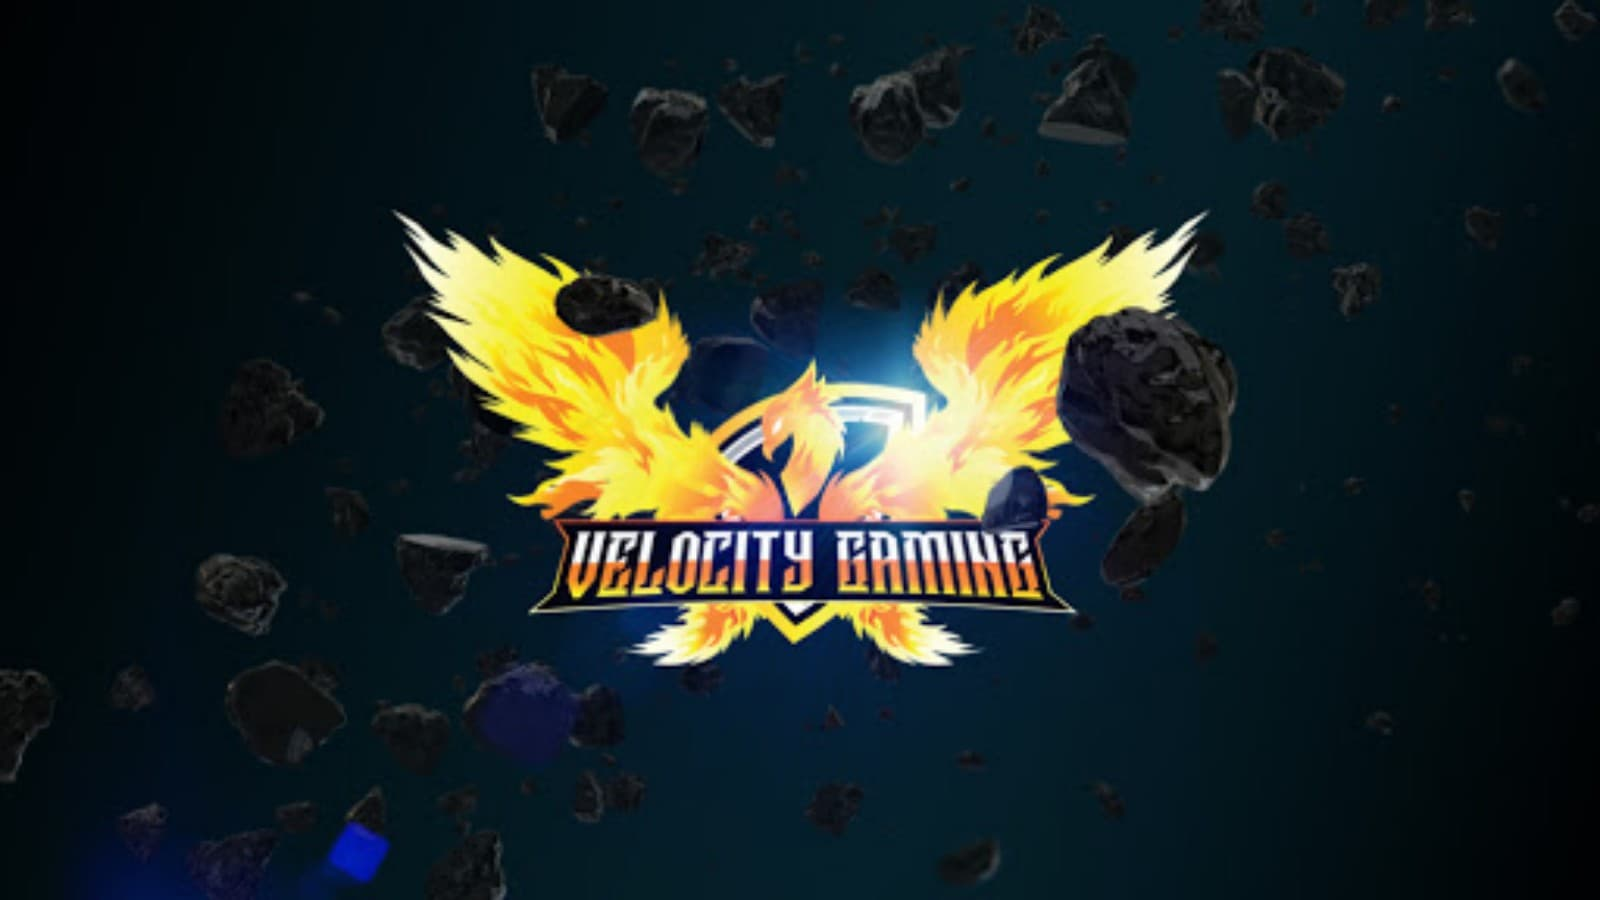 Velocity Gaming to Acquire DeathMaker from Godlike Esports